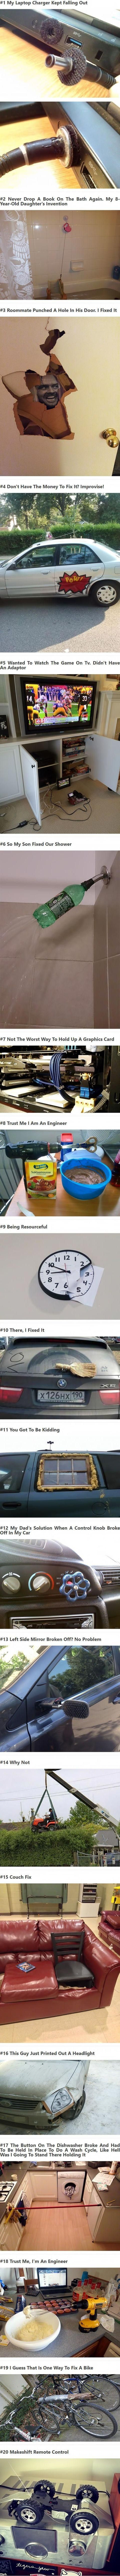 awesome 20 Times Engineers Showed Us How to Fix Everyday Things by http://dezdemonhumoraddiction.space/engineering-humor/20-times-engineers-showed-us-how-to-fix-everyday-things/